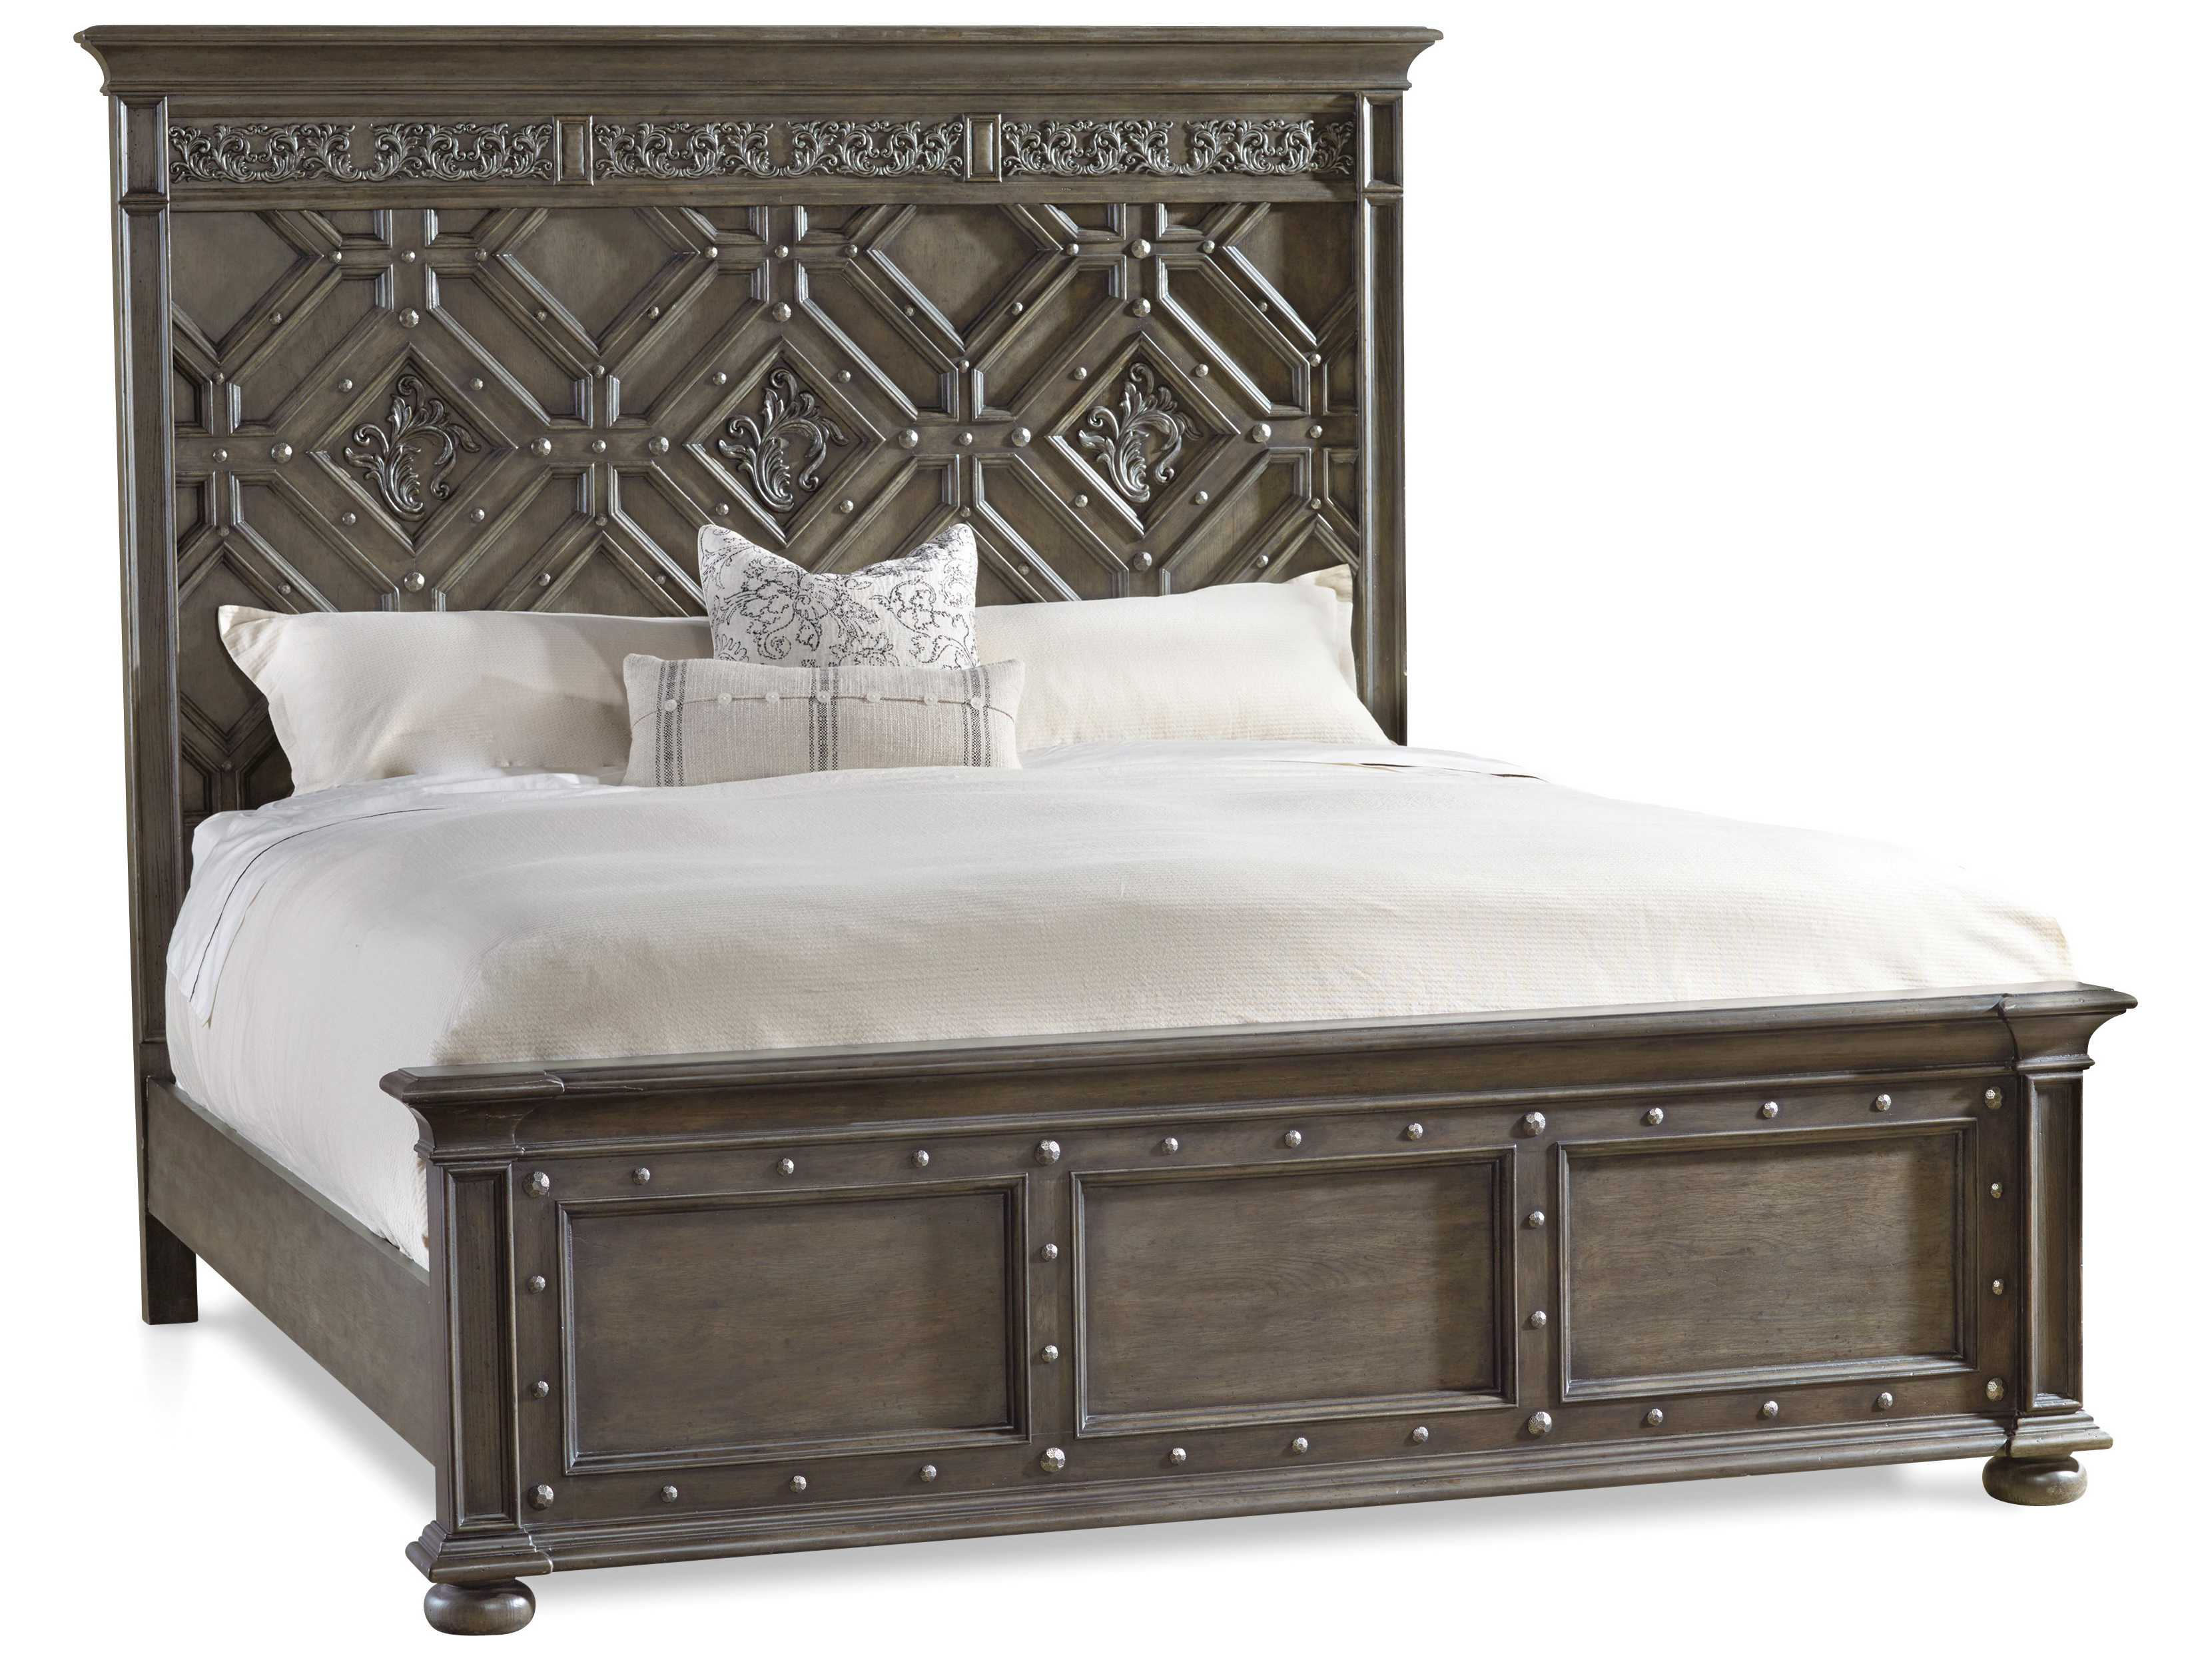 Hooker furniture vintage west dramatic dark charcoal king for Dramatic beds